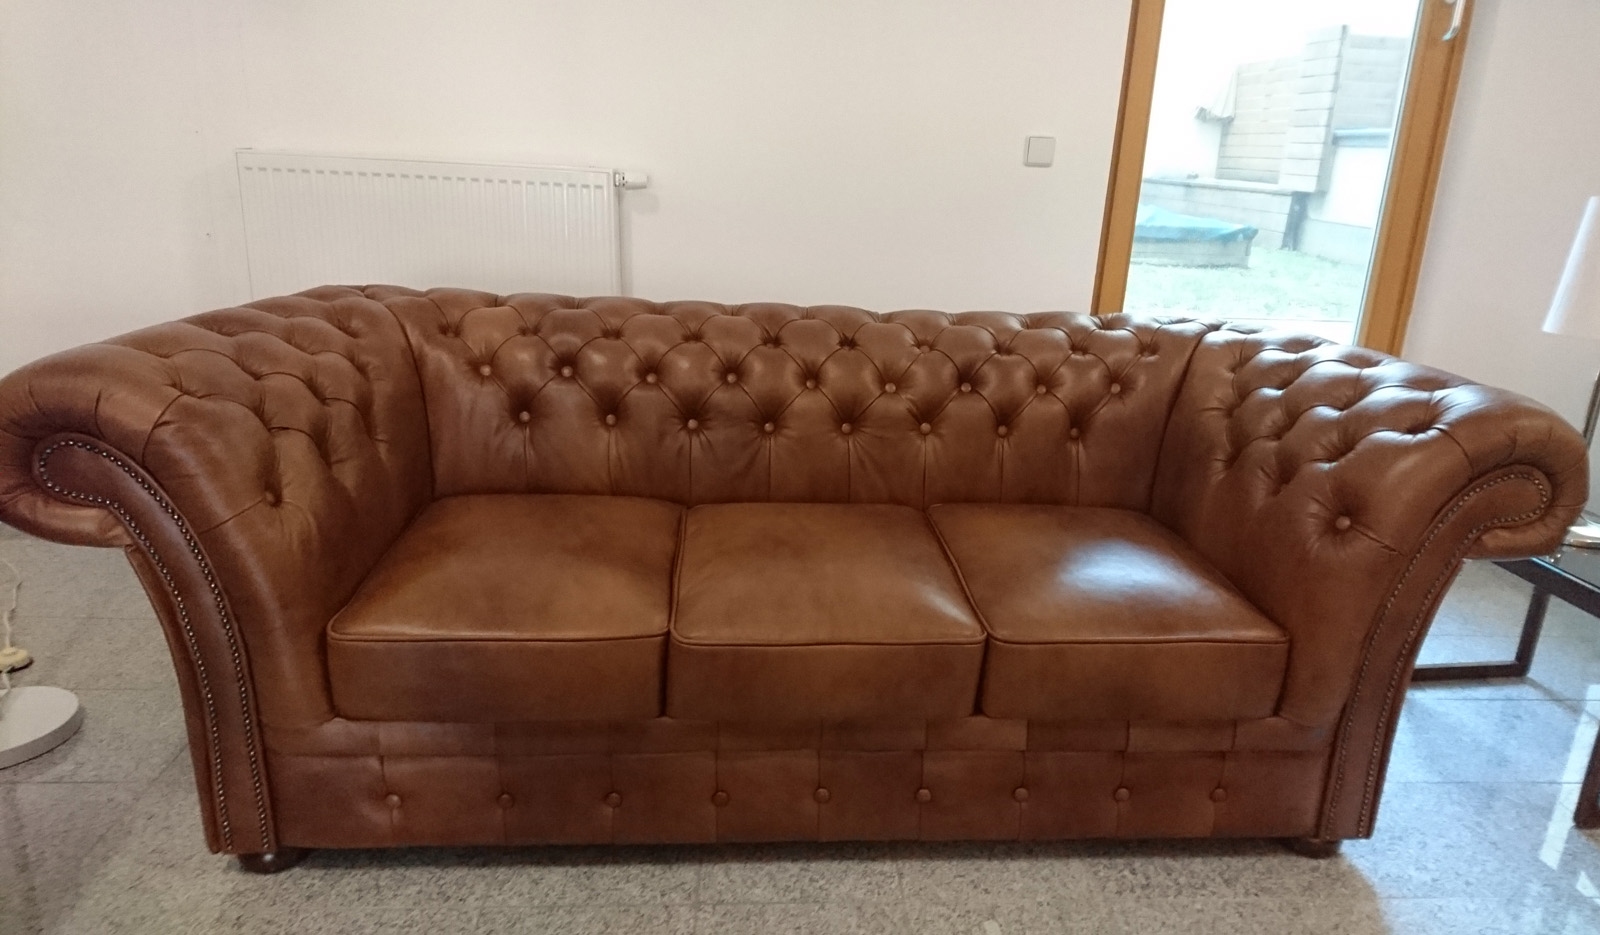 Chesterfield Windchester Sofagarnitur 321 Volleder Antikgold